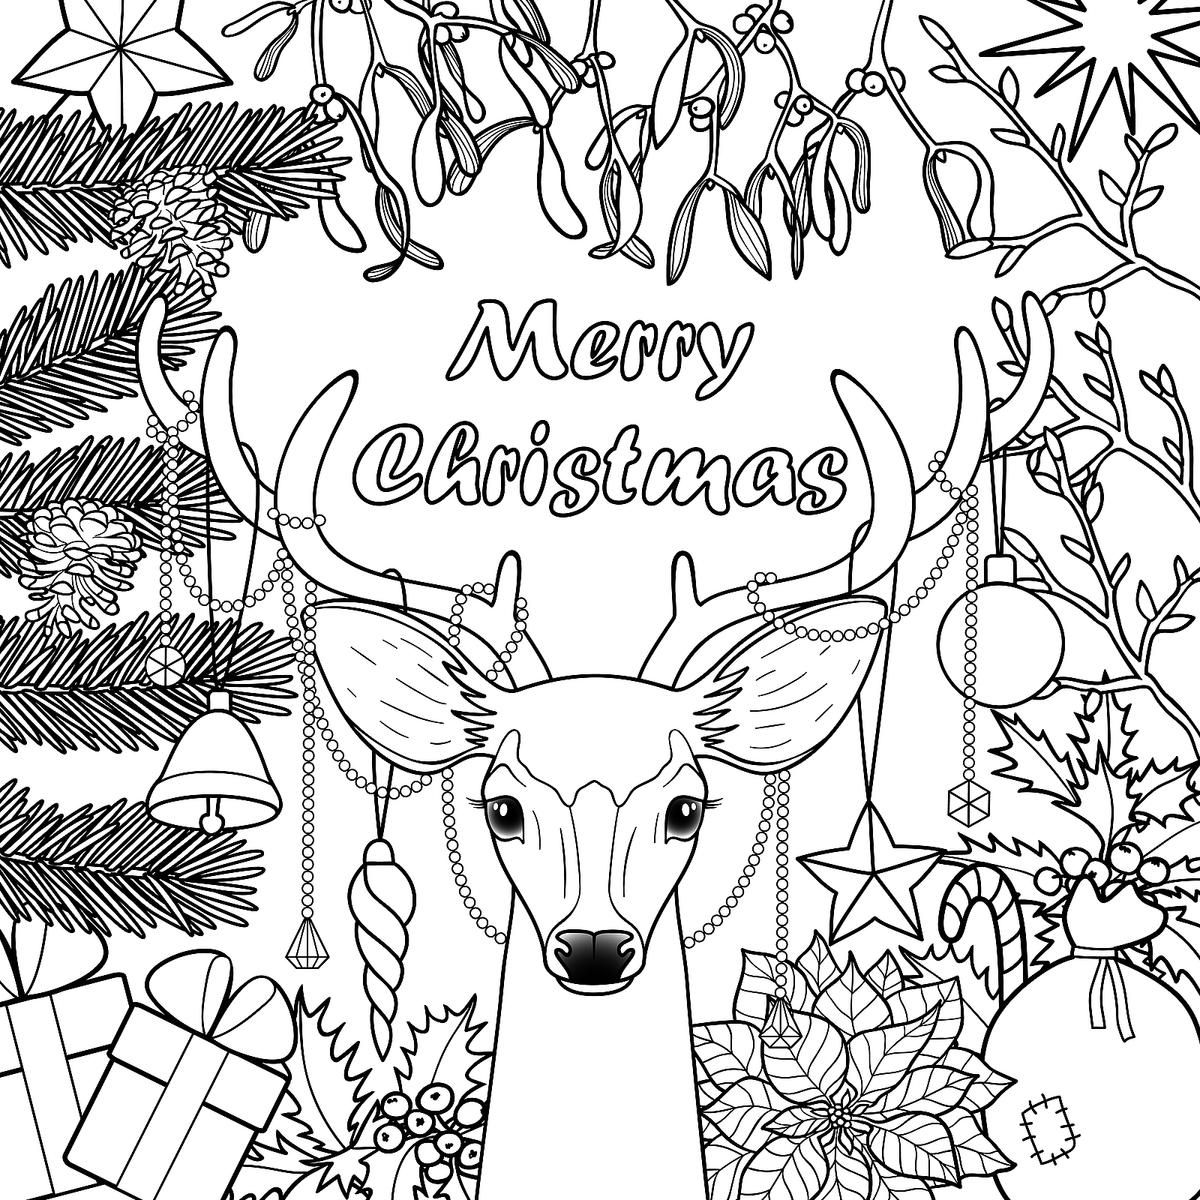 Coloring Rocks Printable Christmas Coloring Pages Christmas Coloring Books Merry Christmas Coloring Pages